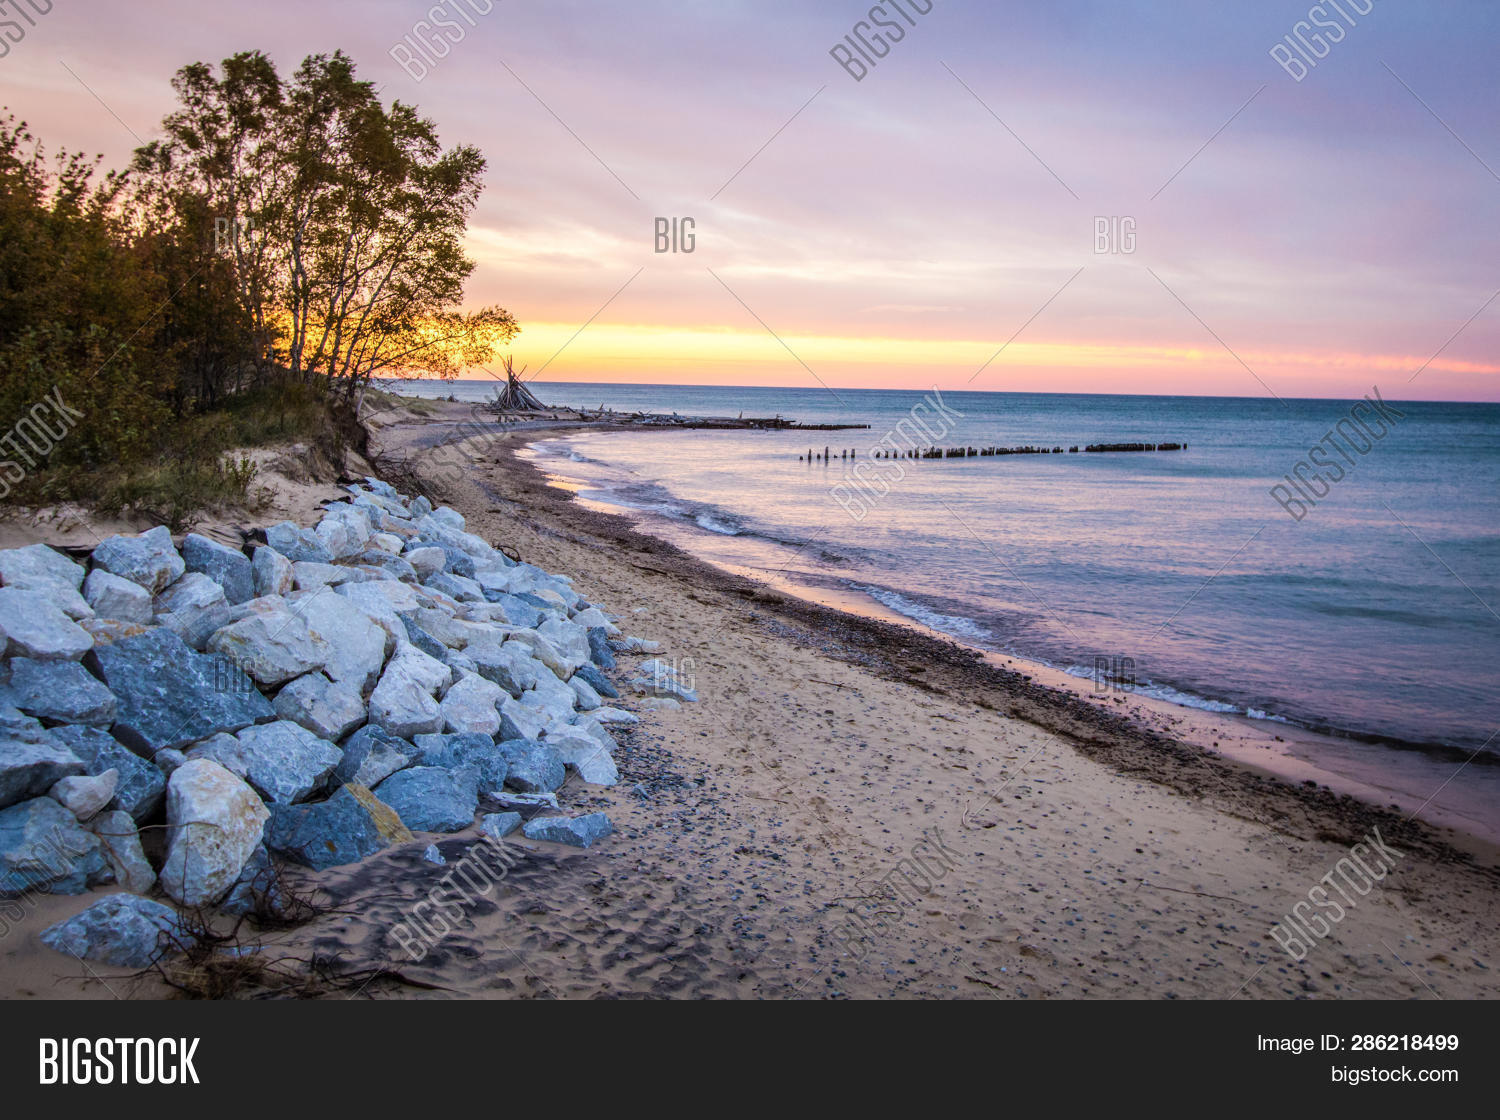 America,Great,Lake,Lakes,Michigan,Midwest,Peninsula,Point,States,Superior,USA,United,Upper,Whitefish,backgrounds,beach,coast,coastal,dawn,evening,gorgeous,horizon,hut,lakeshore,landscapes,morning,natural,nature,no,outdoors,people,remote,rocky,sand,sandy,scenery,scenic,sea,seshore,shore,sky,sunrise,sunset,tourism,travel,twilight,vibrant,water,waves,wild